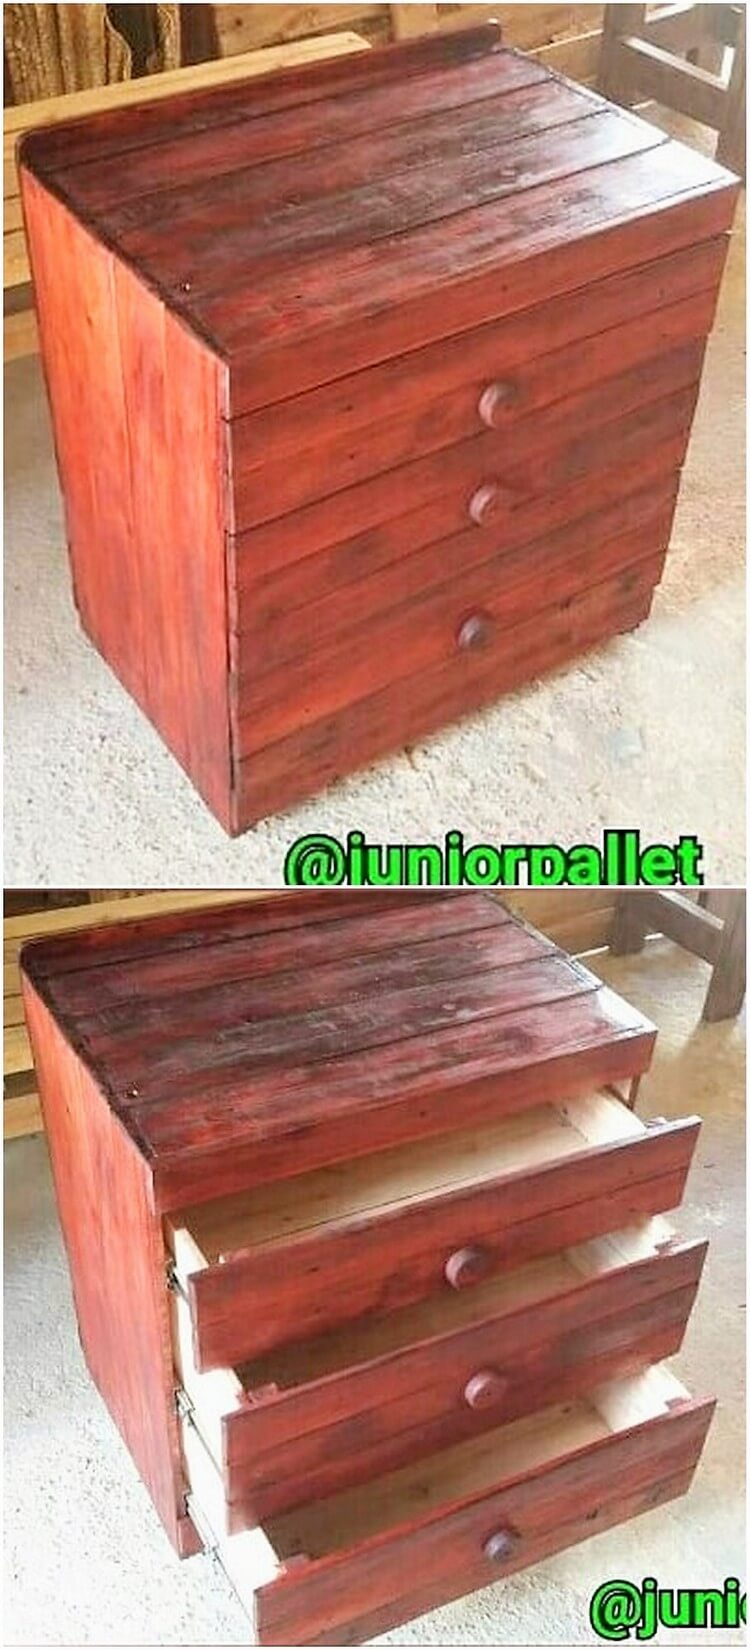 Pallet Chest fof Drawers